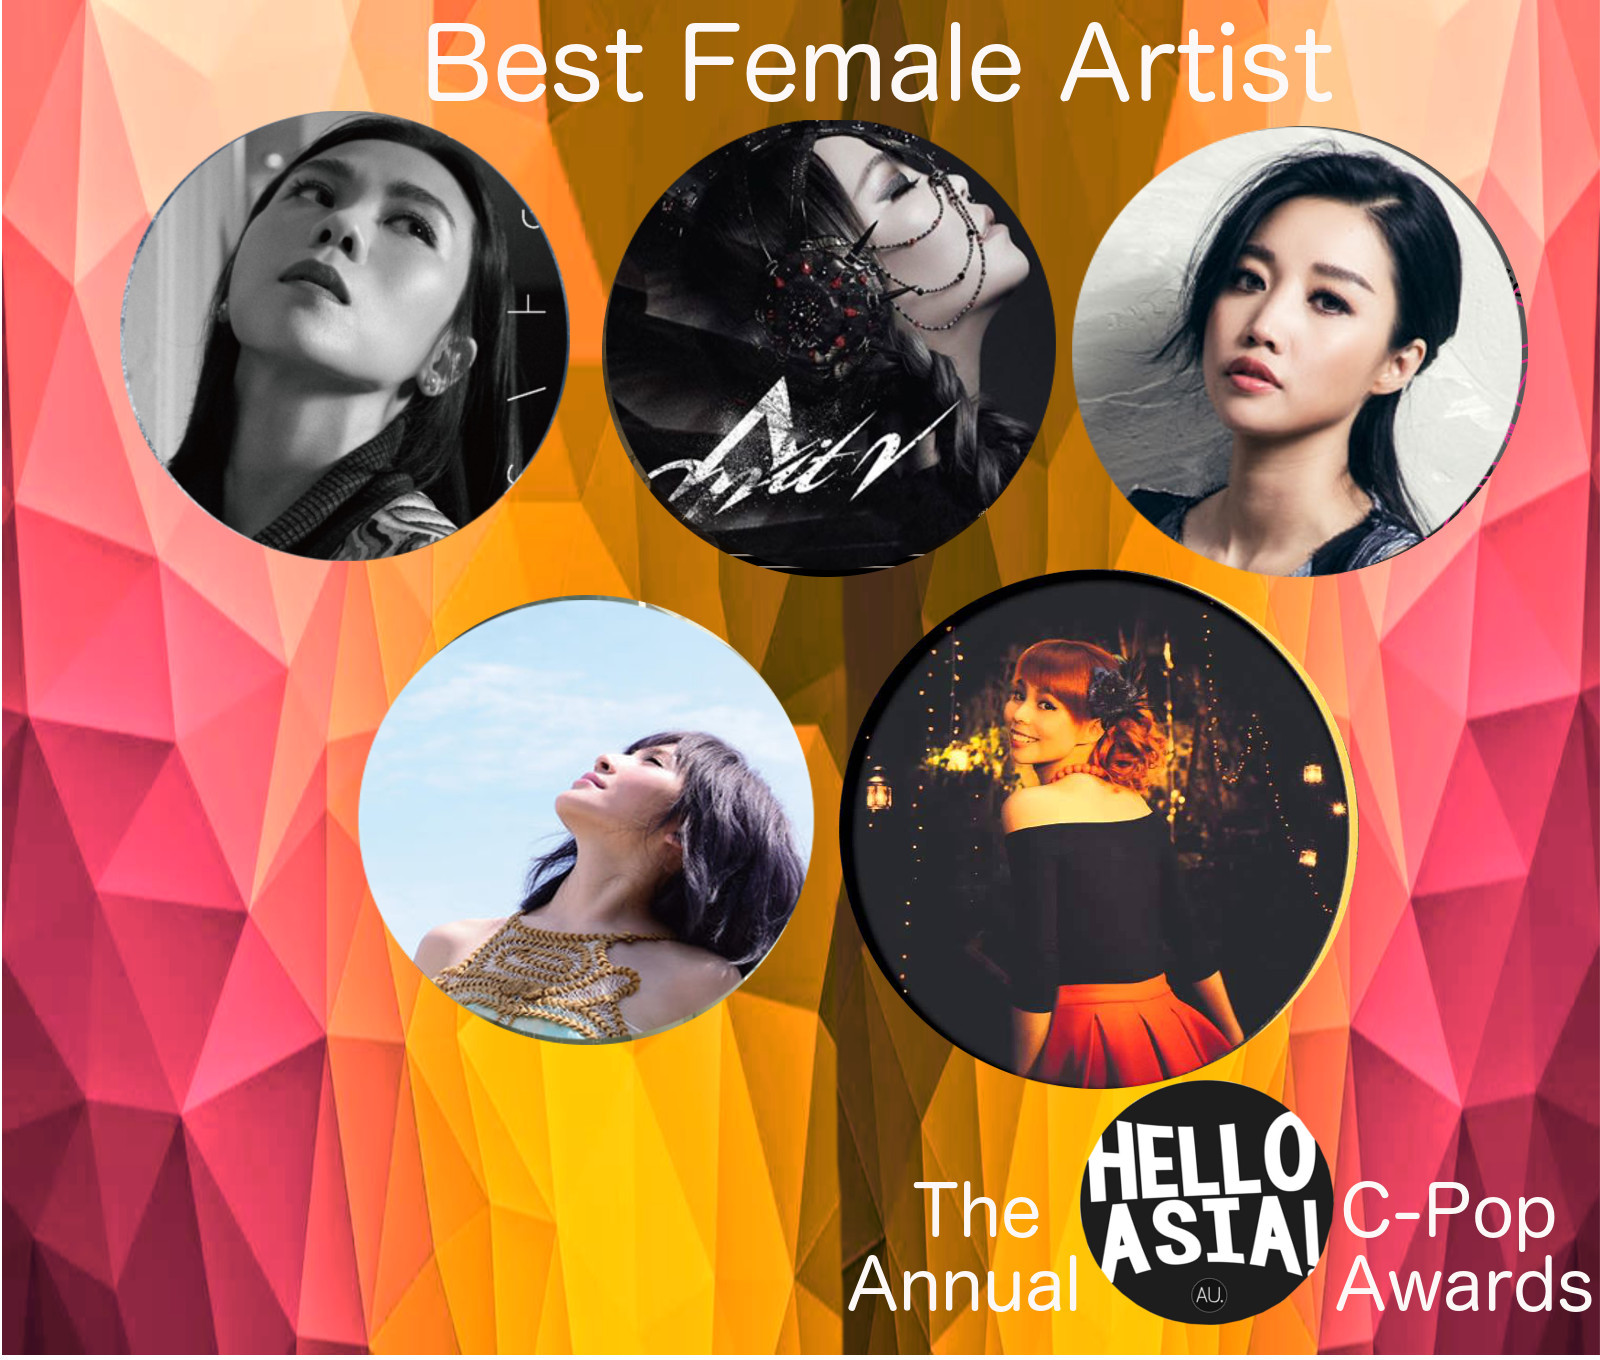 Best Female Artist